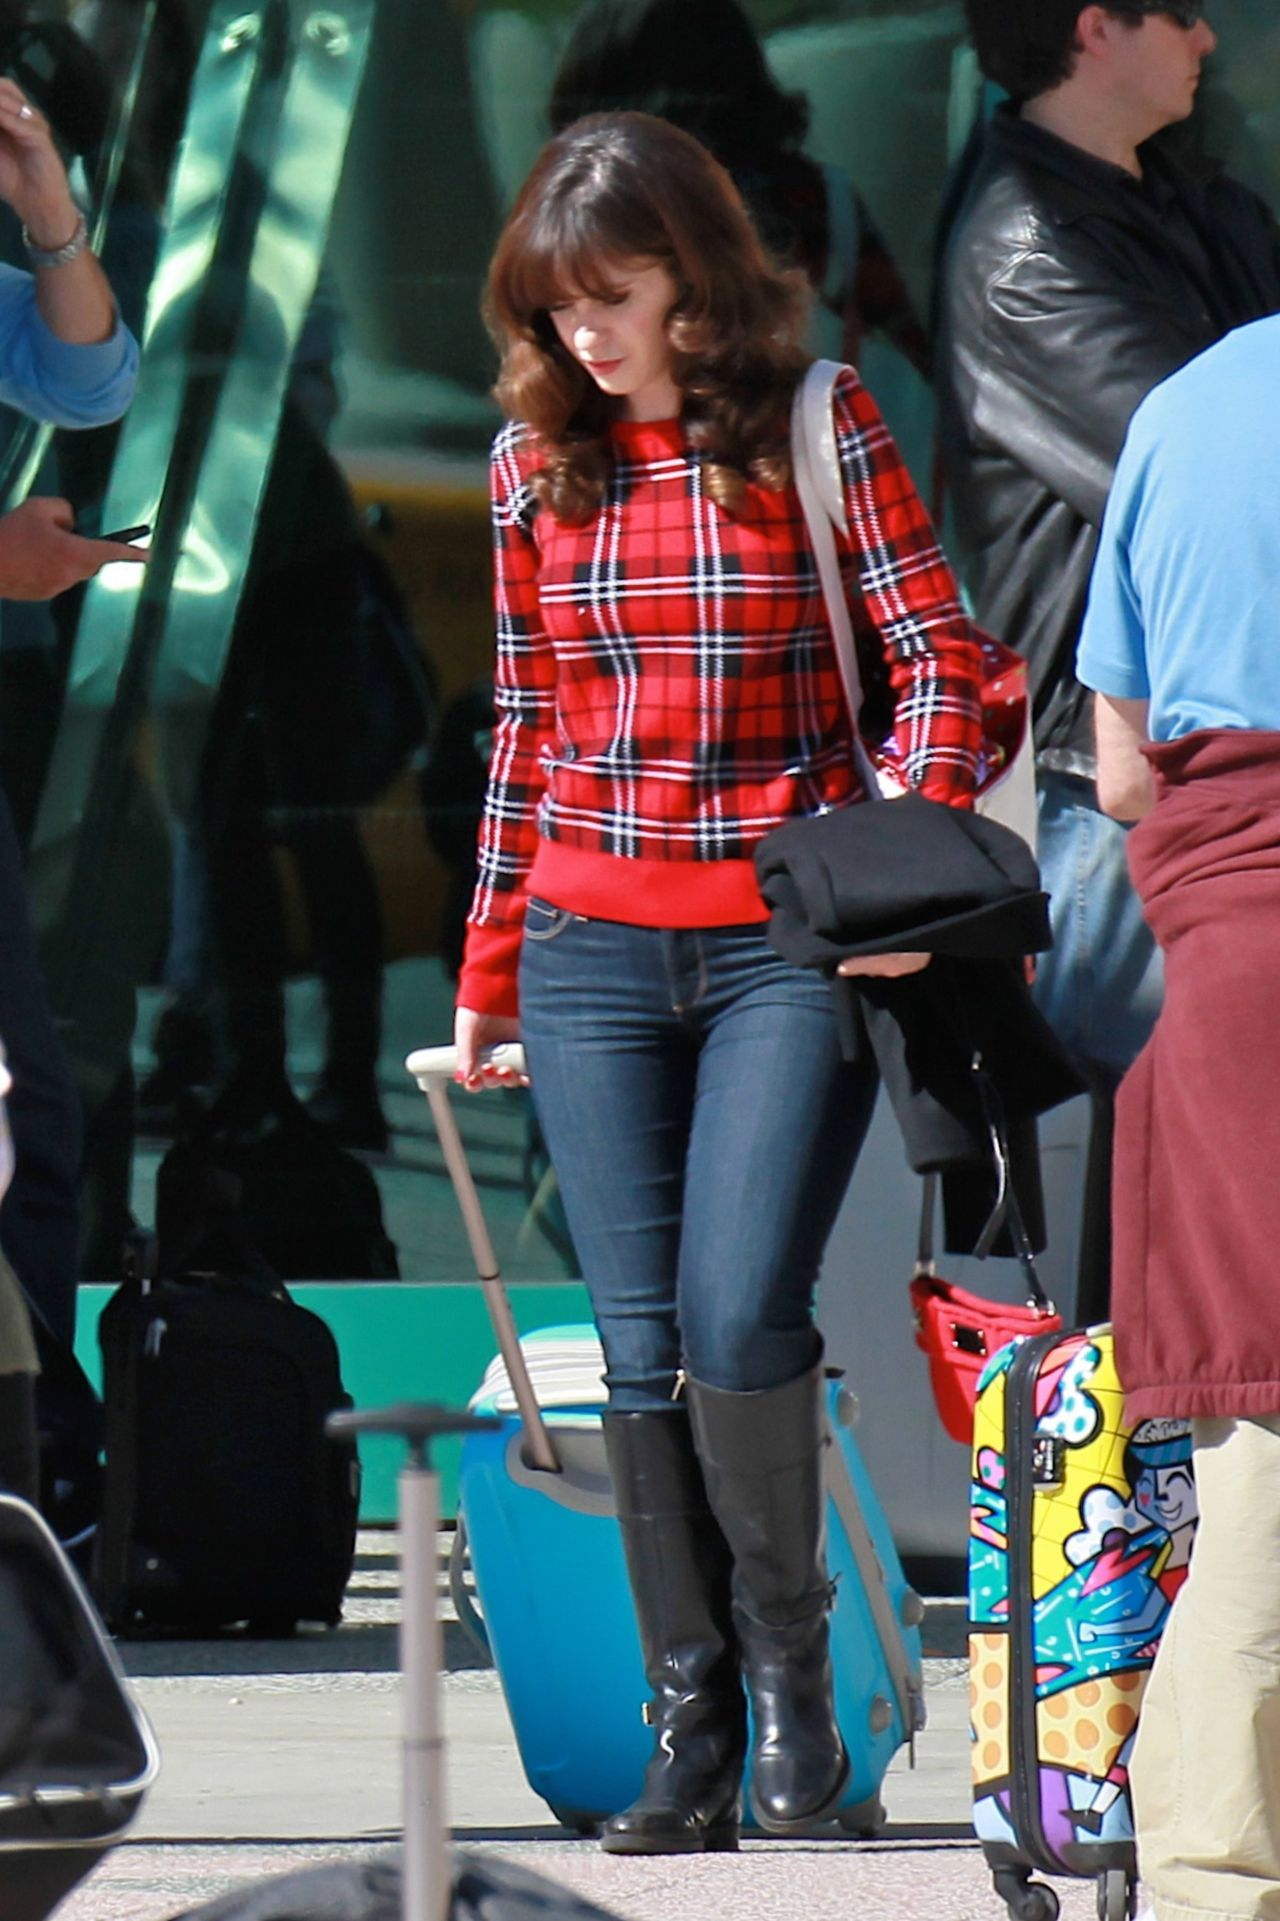 Zooey Deschanel New Girl Set Photos Los Angeles Nov